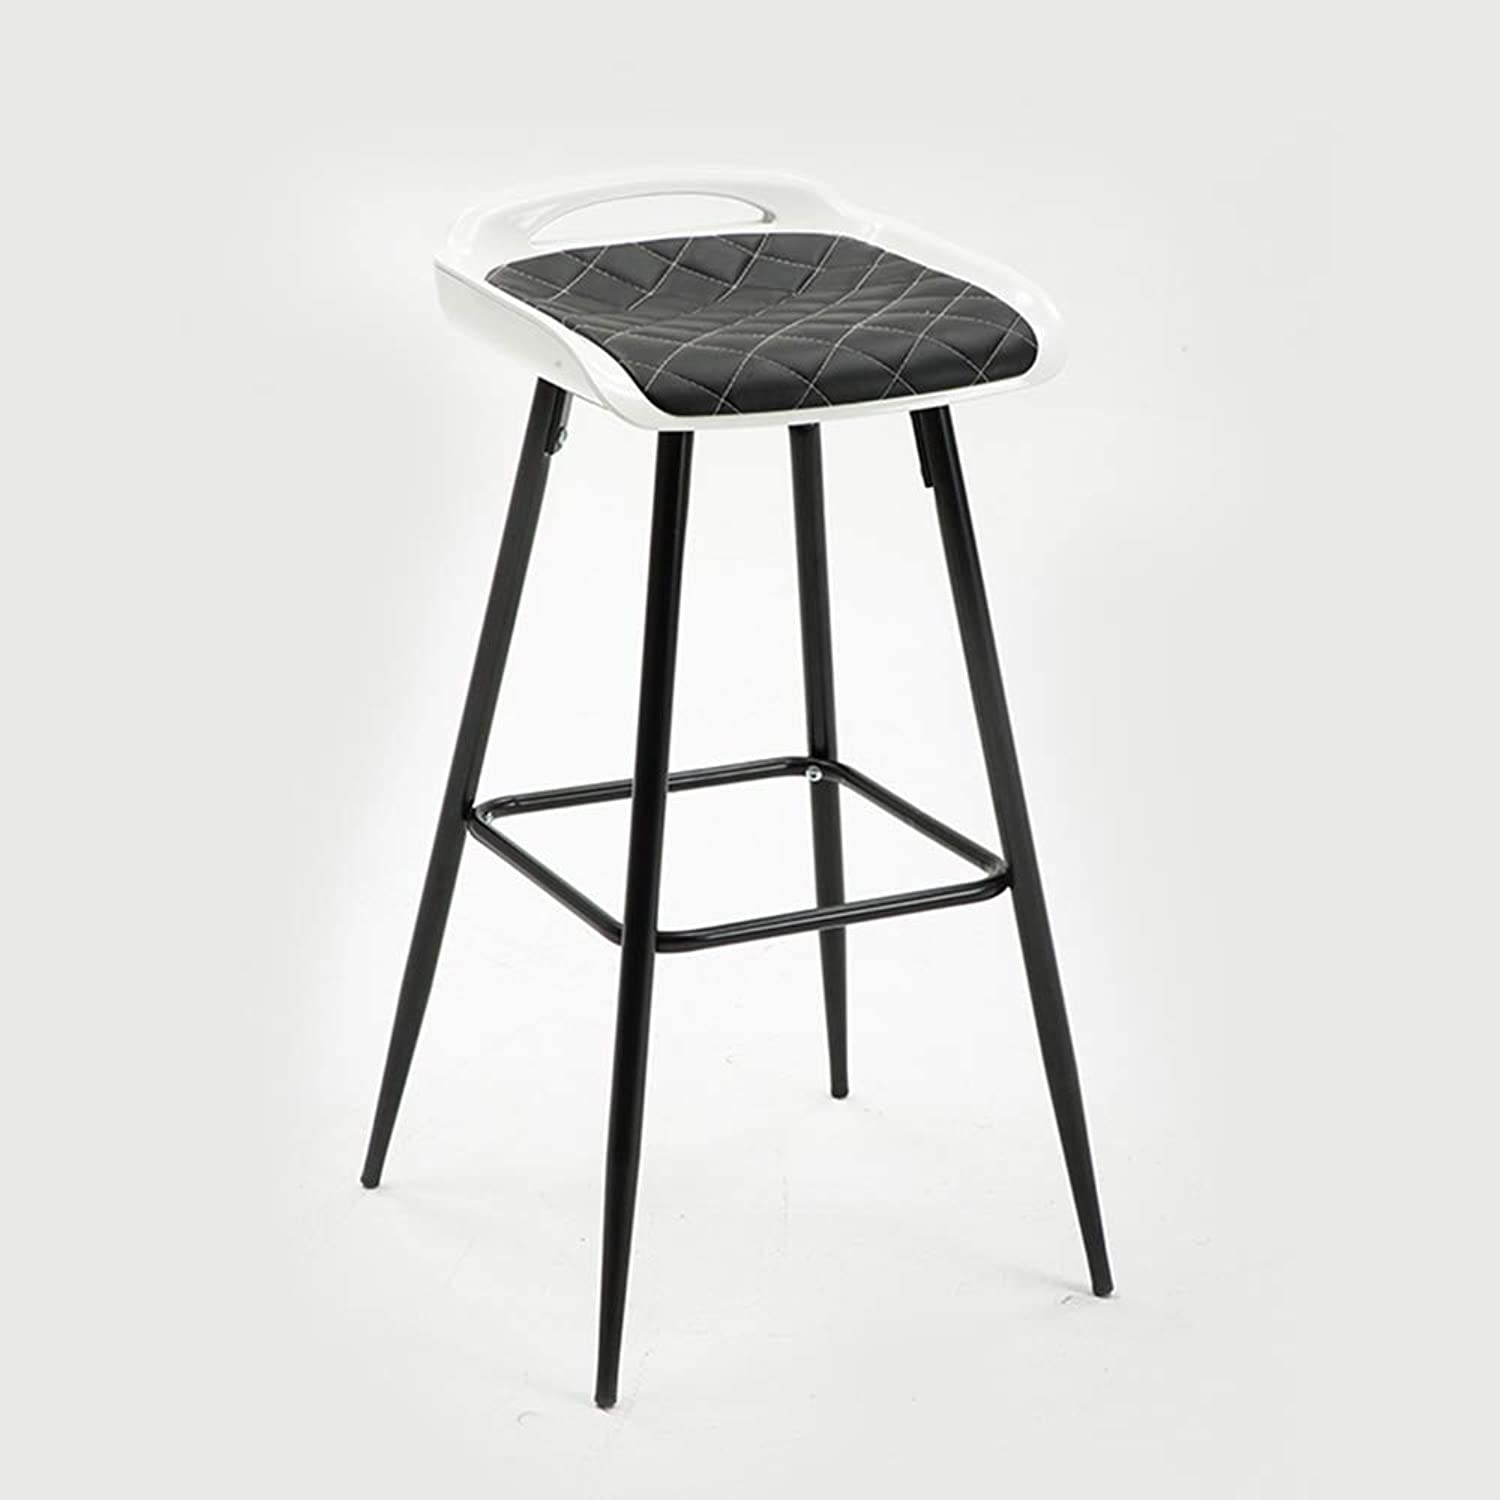 DUXX Bar Stool, Bar Stool Modern Minimalist Bar Chair Bar Chair High Stool Cashier Stool Bar Stool (color   C)